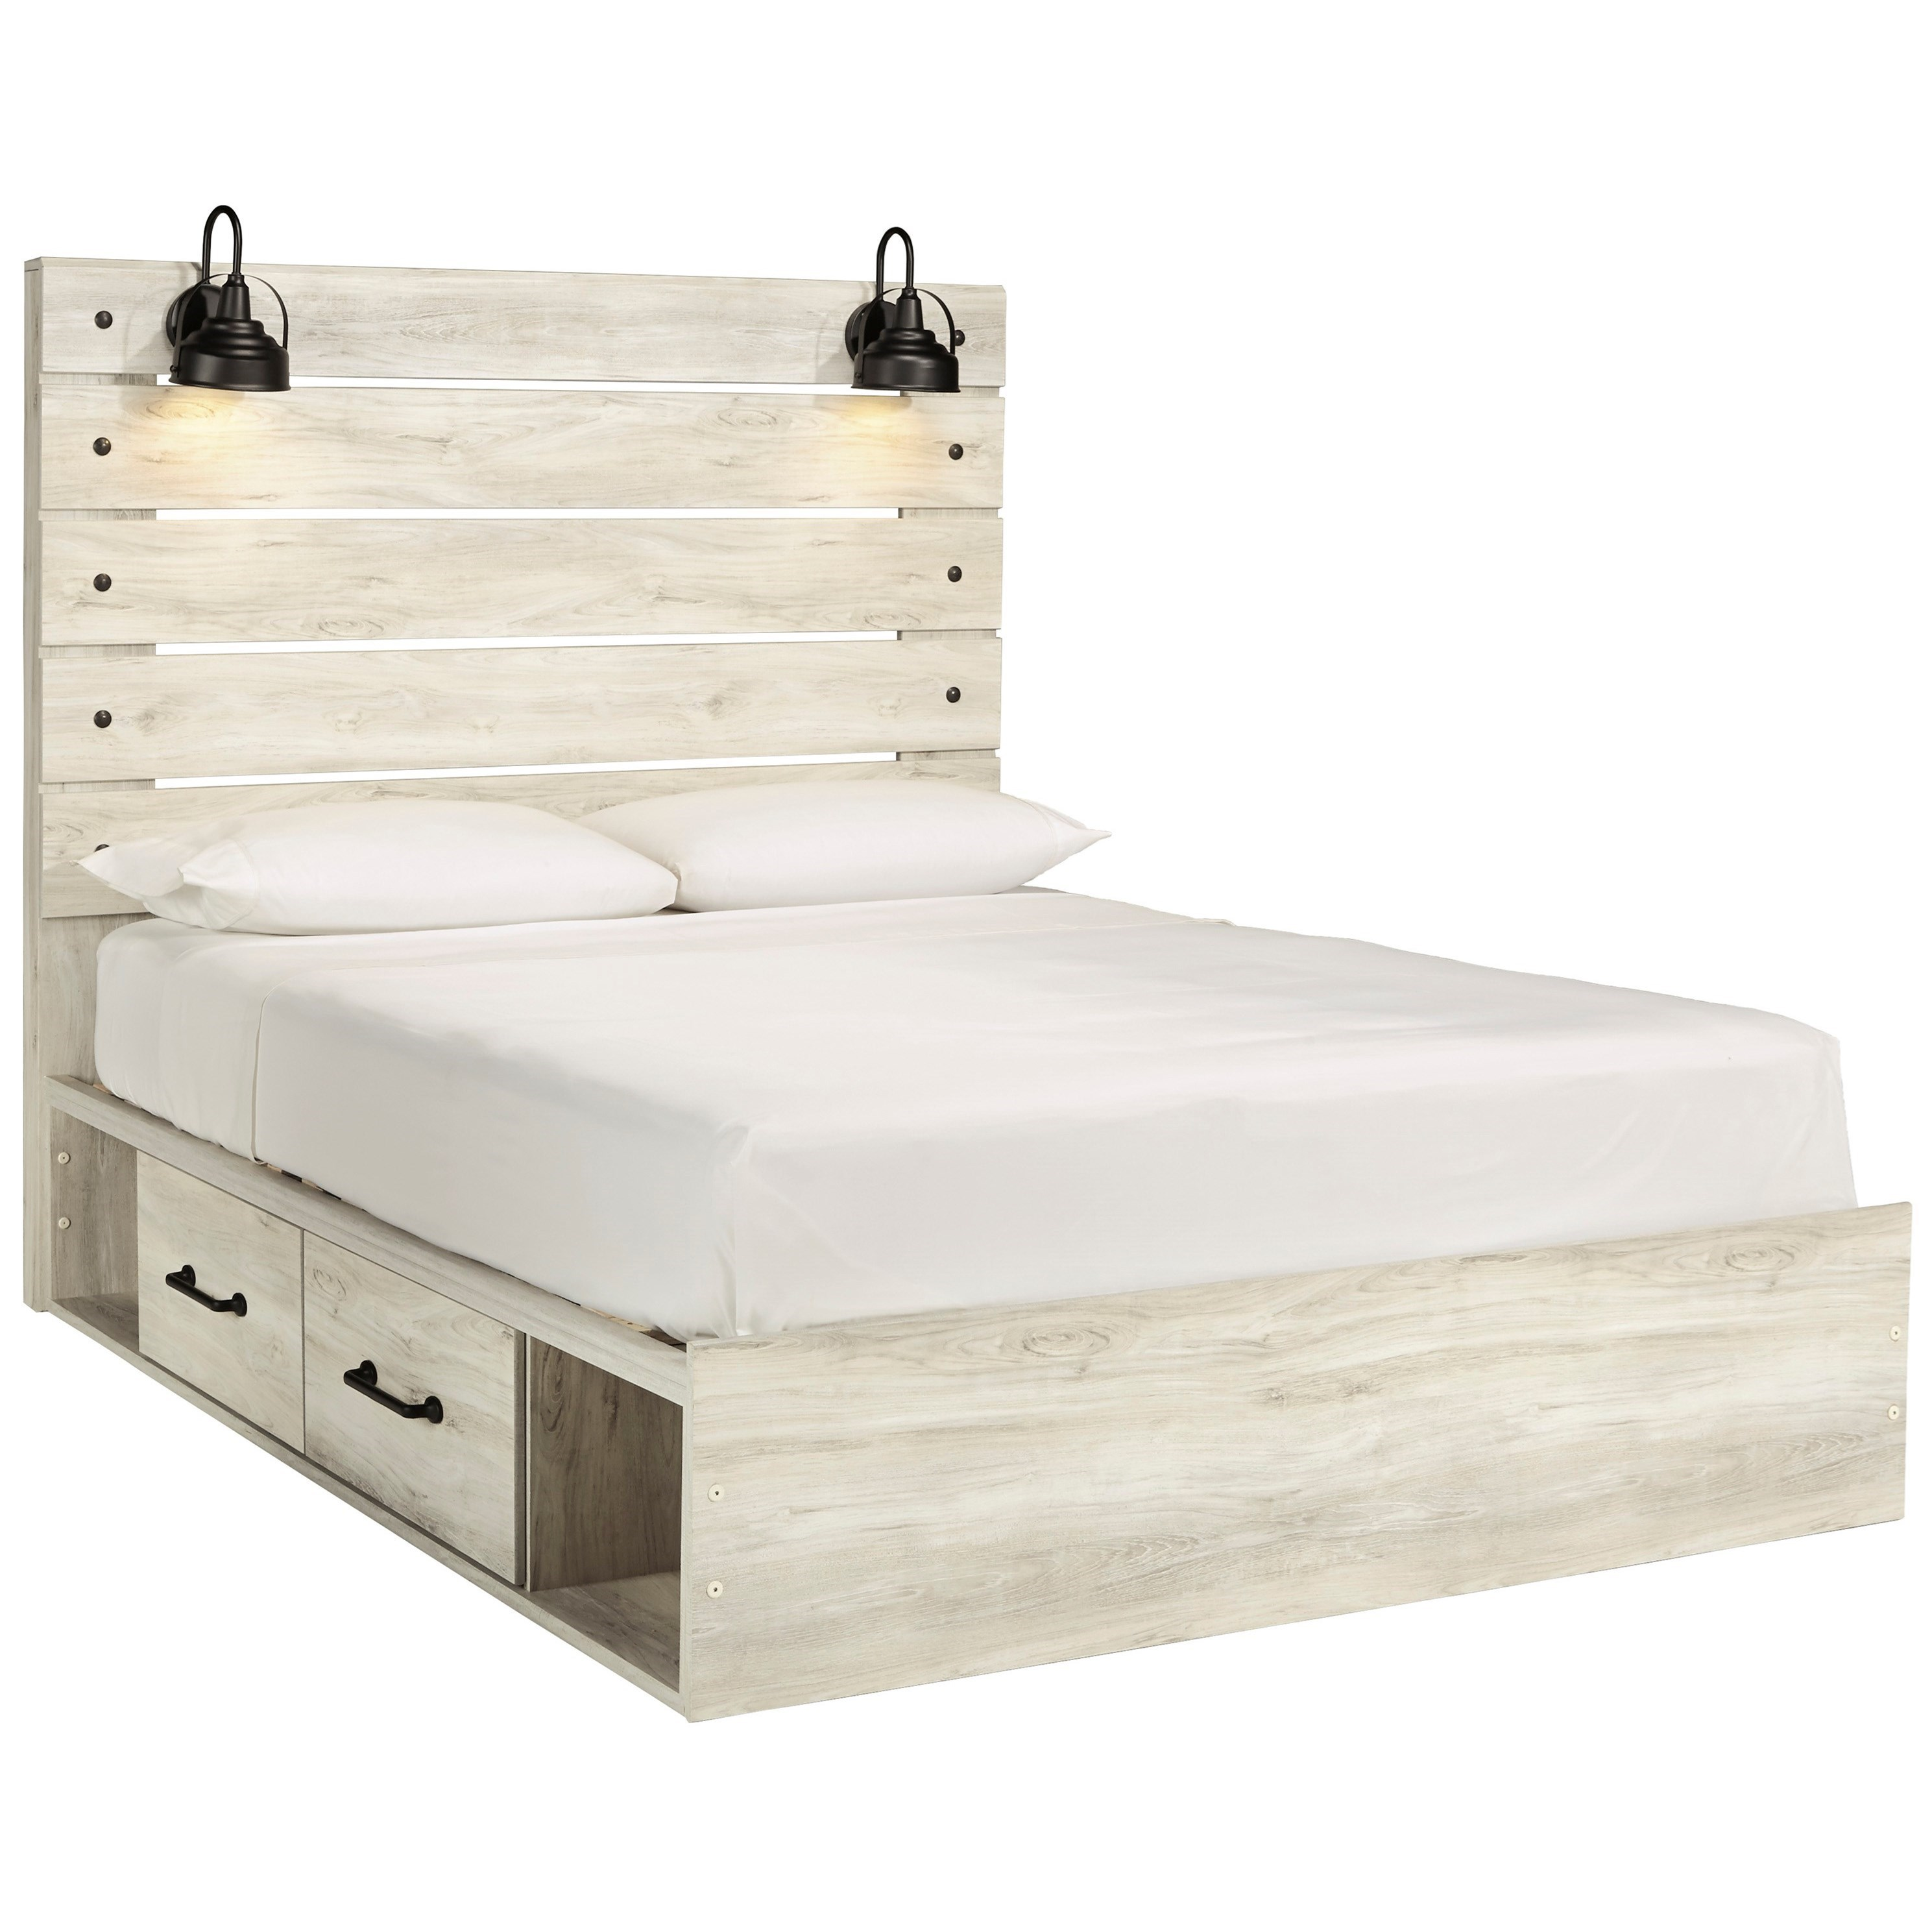 Ashley Signature Design Cambeck Rustic Queen Storage Bed With 4 Drawers Industrial Lights Dunk Bright Furniture Platform Beds Low Profile Beds